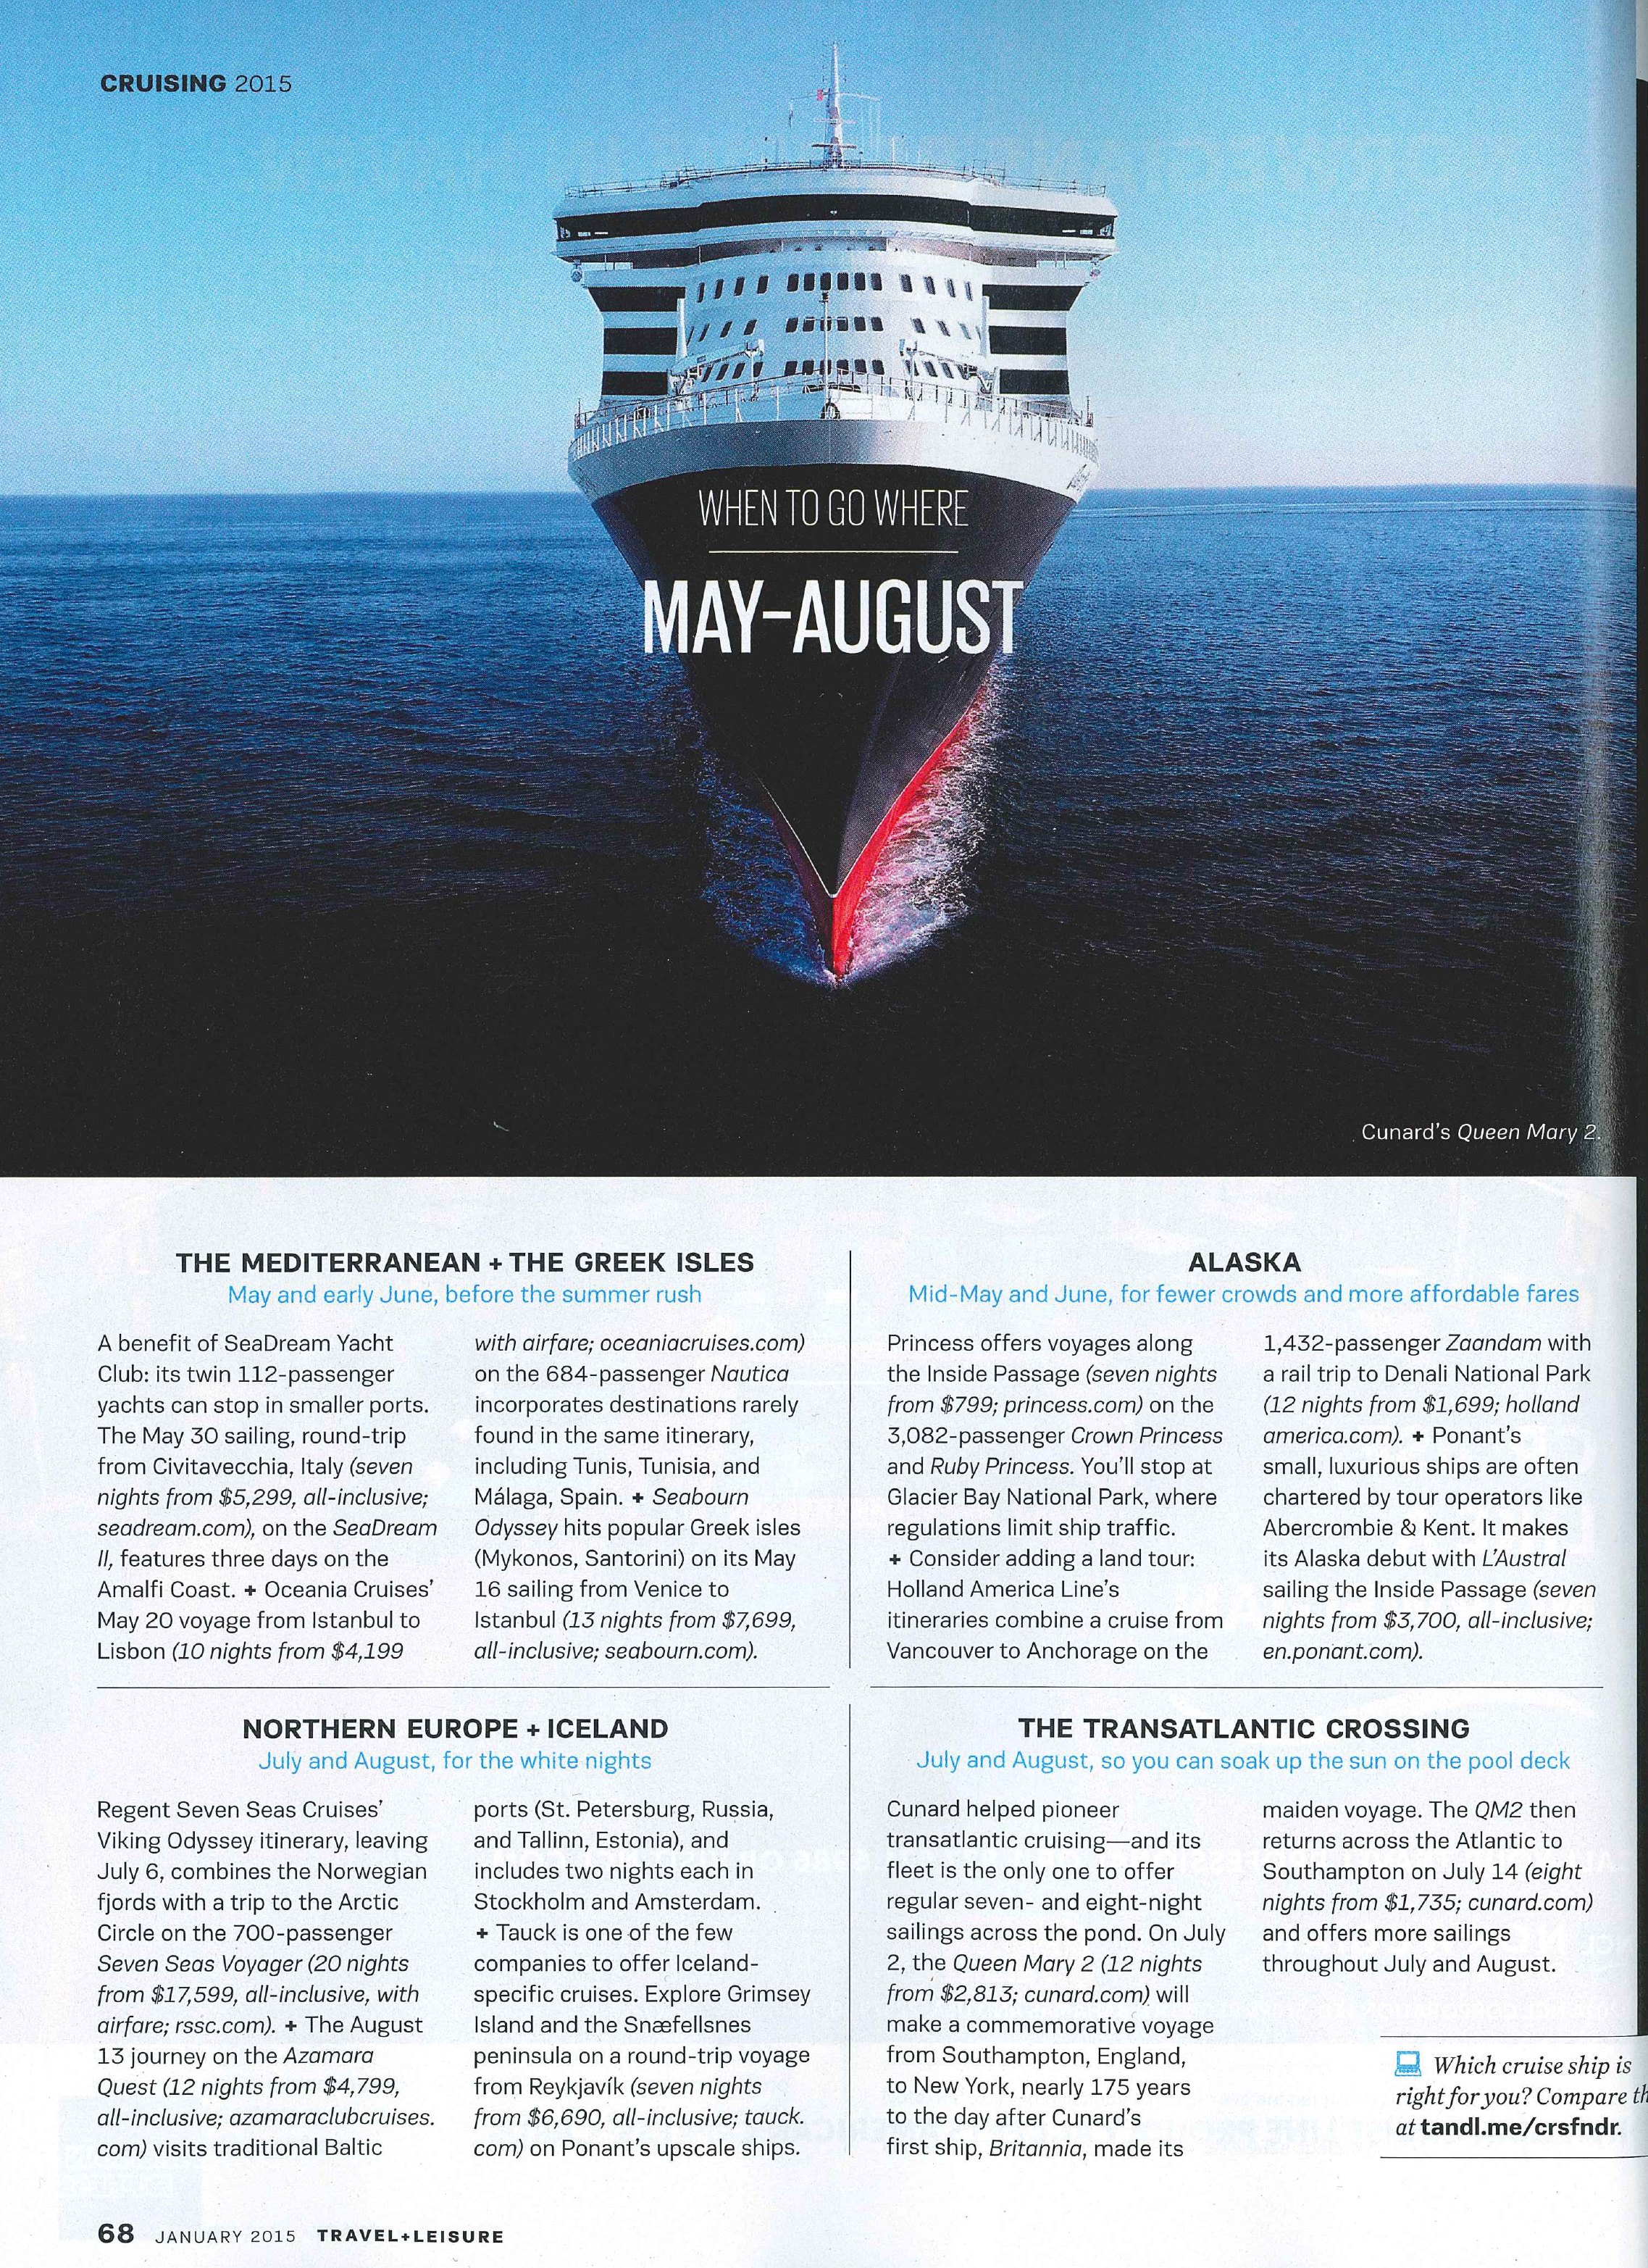 Queen Mary 2 - Travel and Leisure - 6.jpg